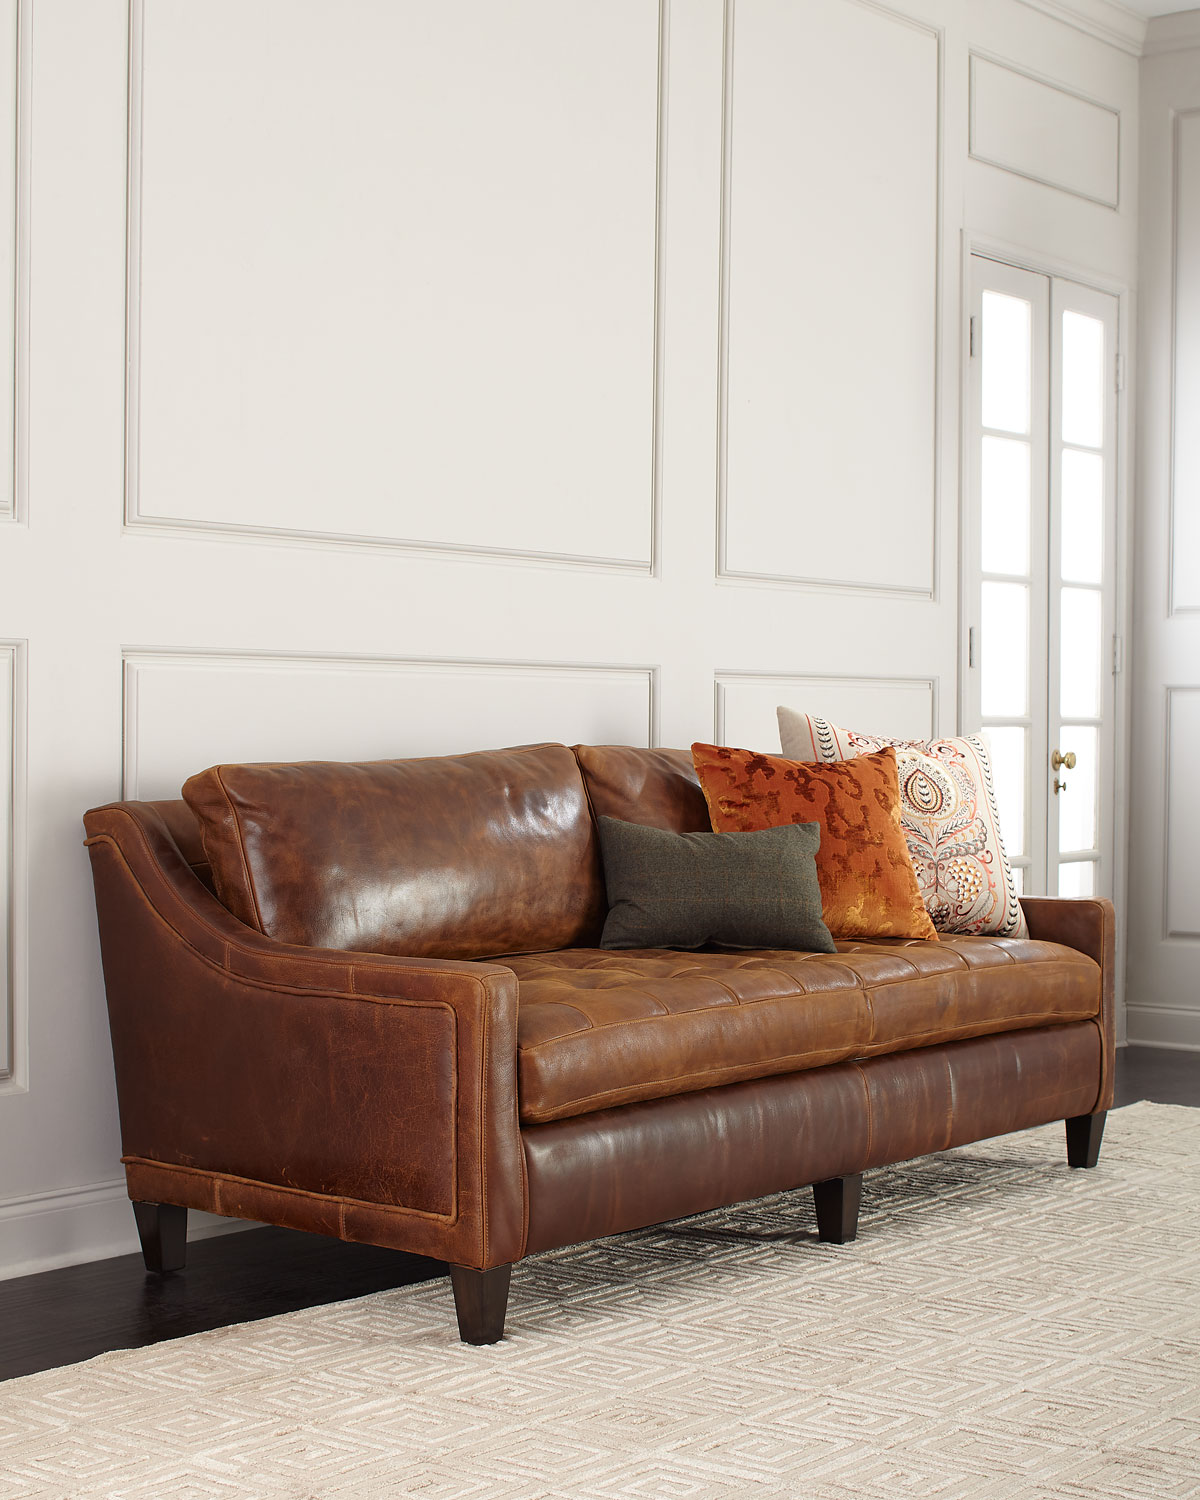 Markel Biscuit Tufted Leather Sofa 84\